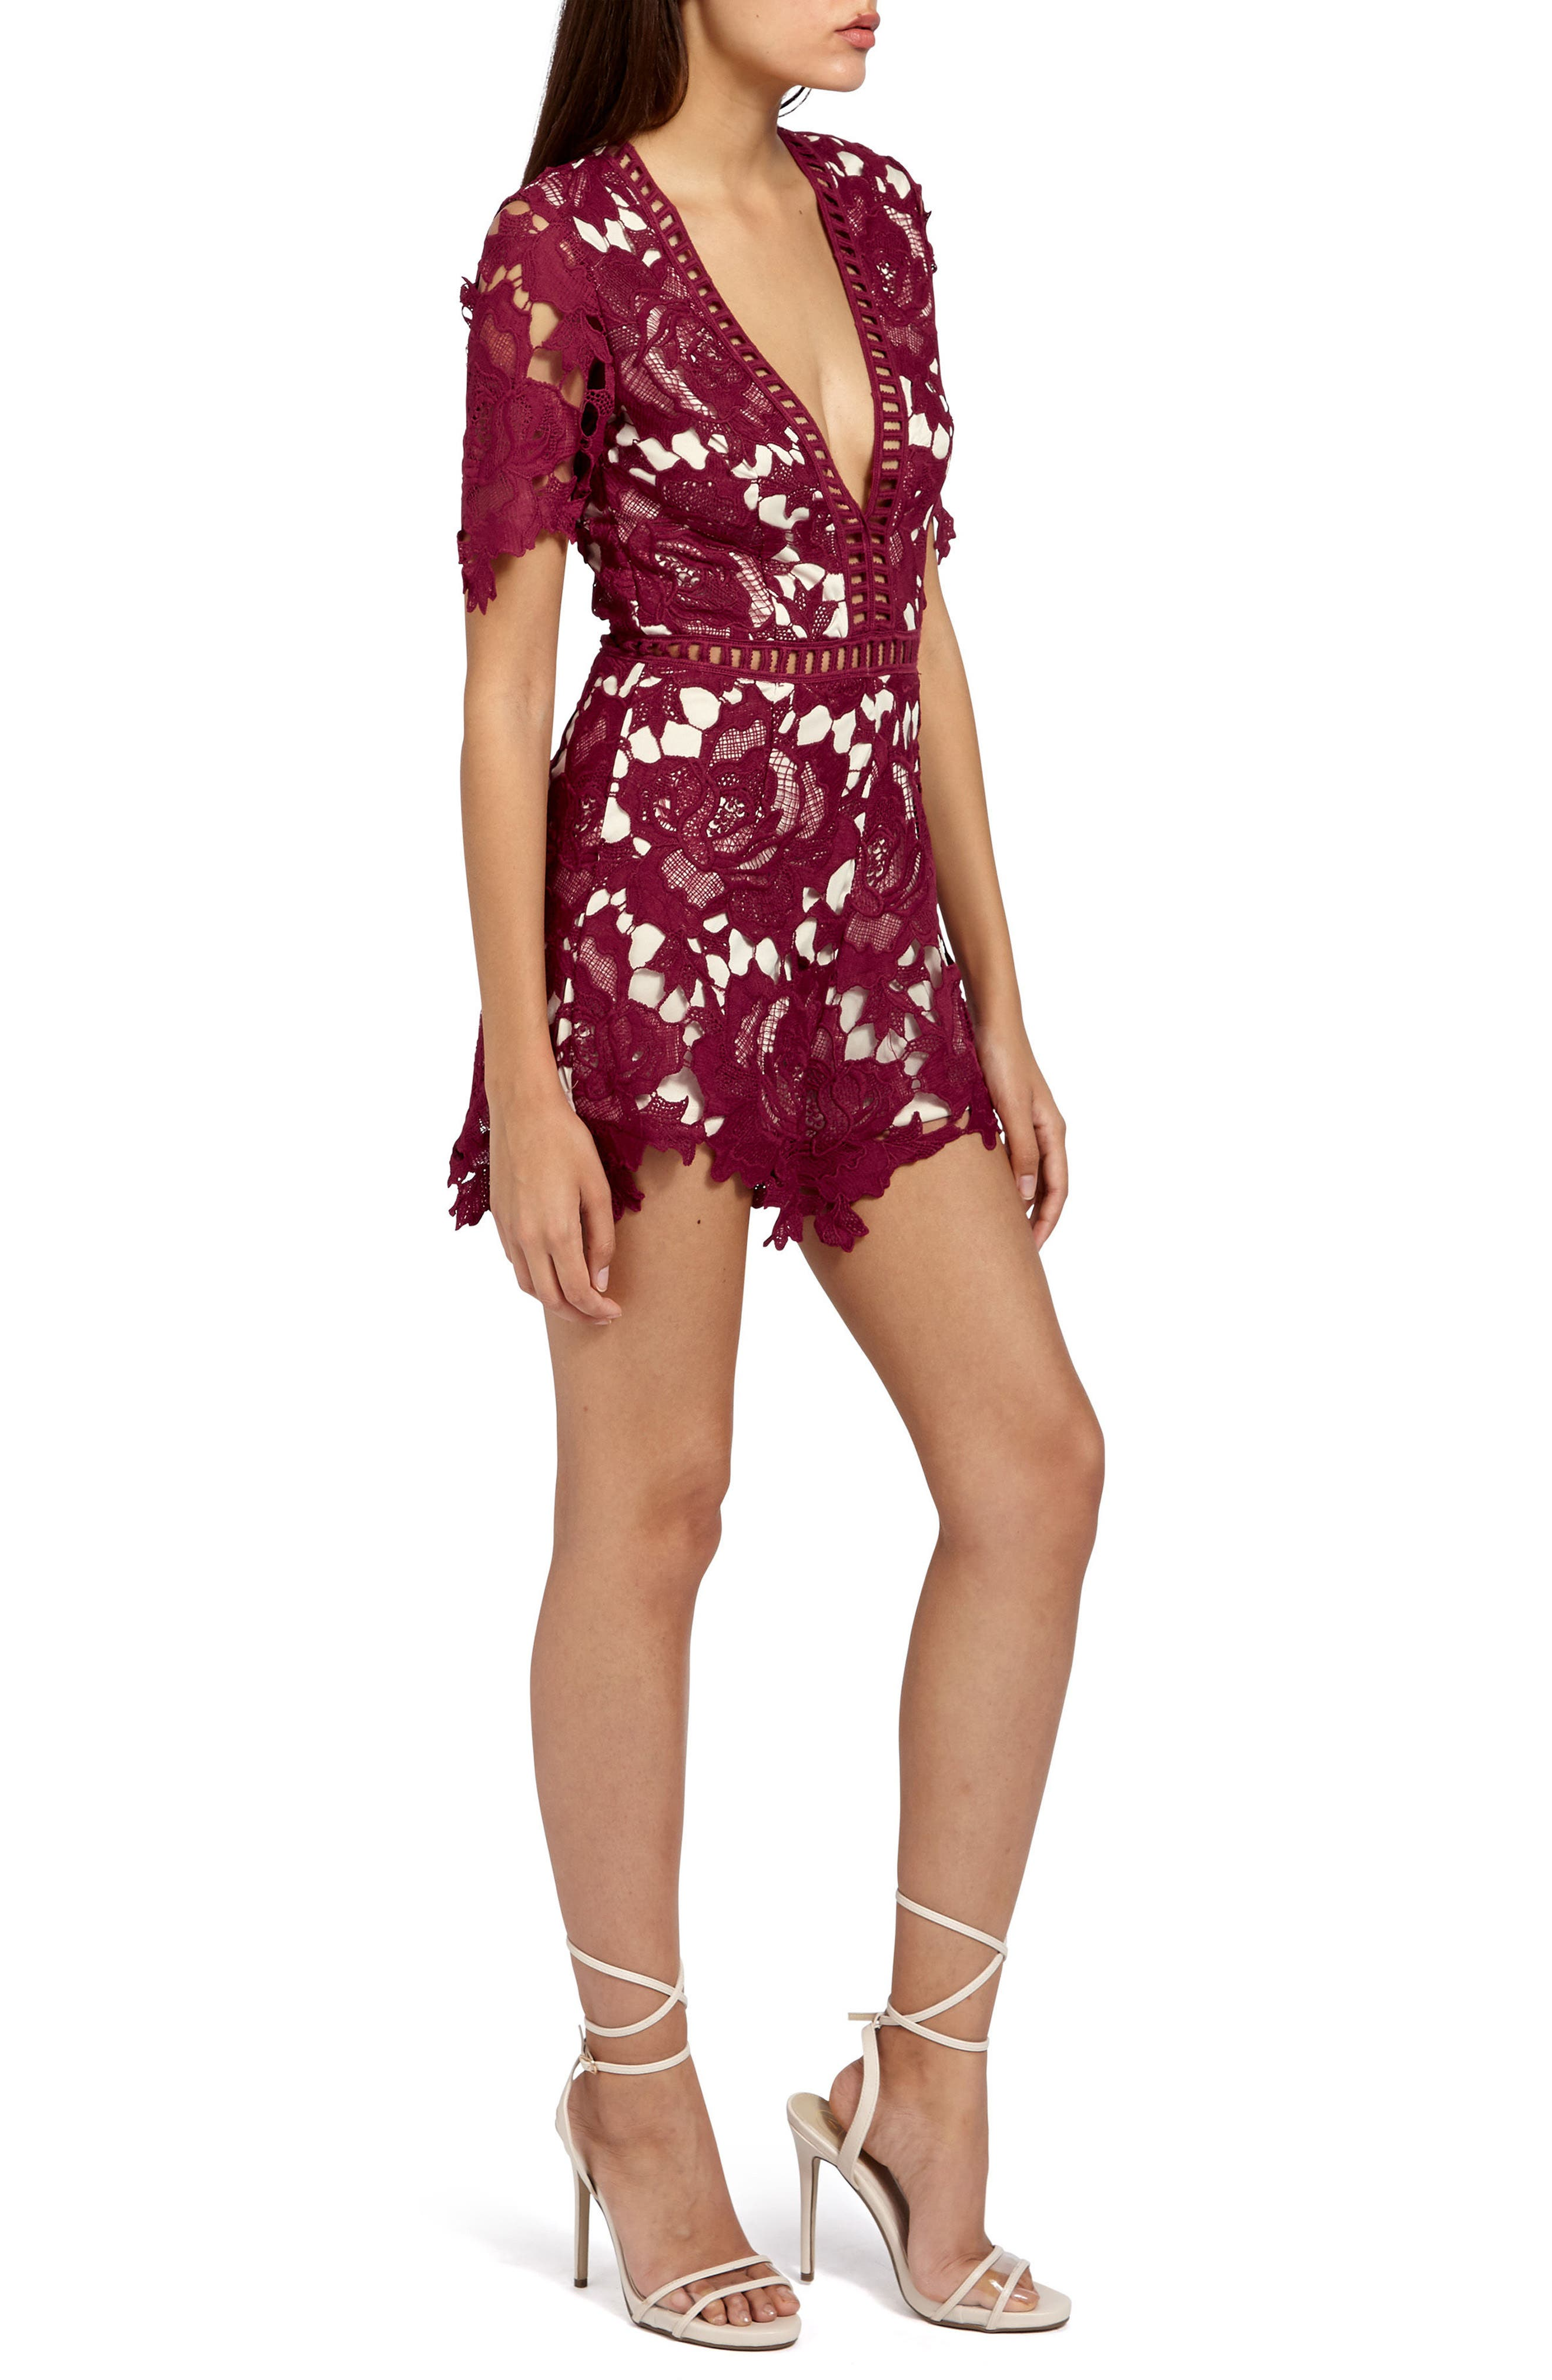 Ladder Stitch Lace Romper,                             Alternate thumbnail 3, color,                             Burgundy